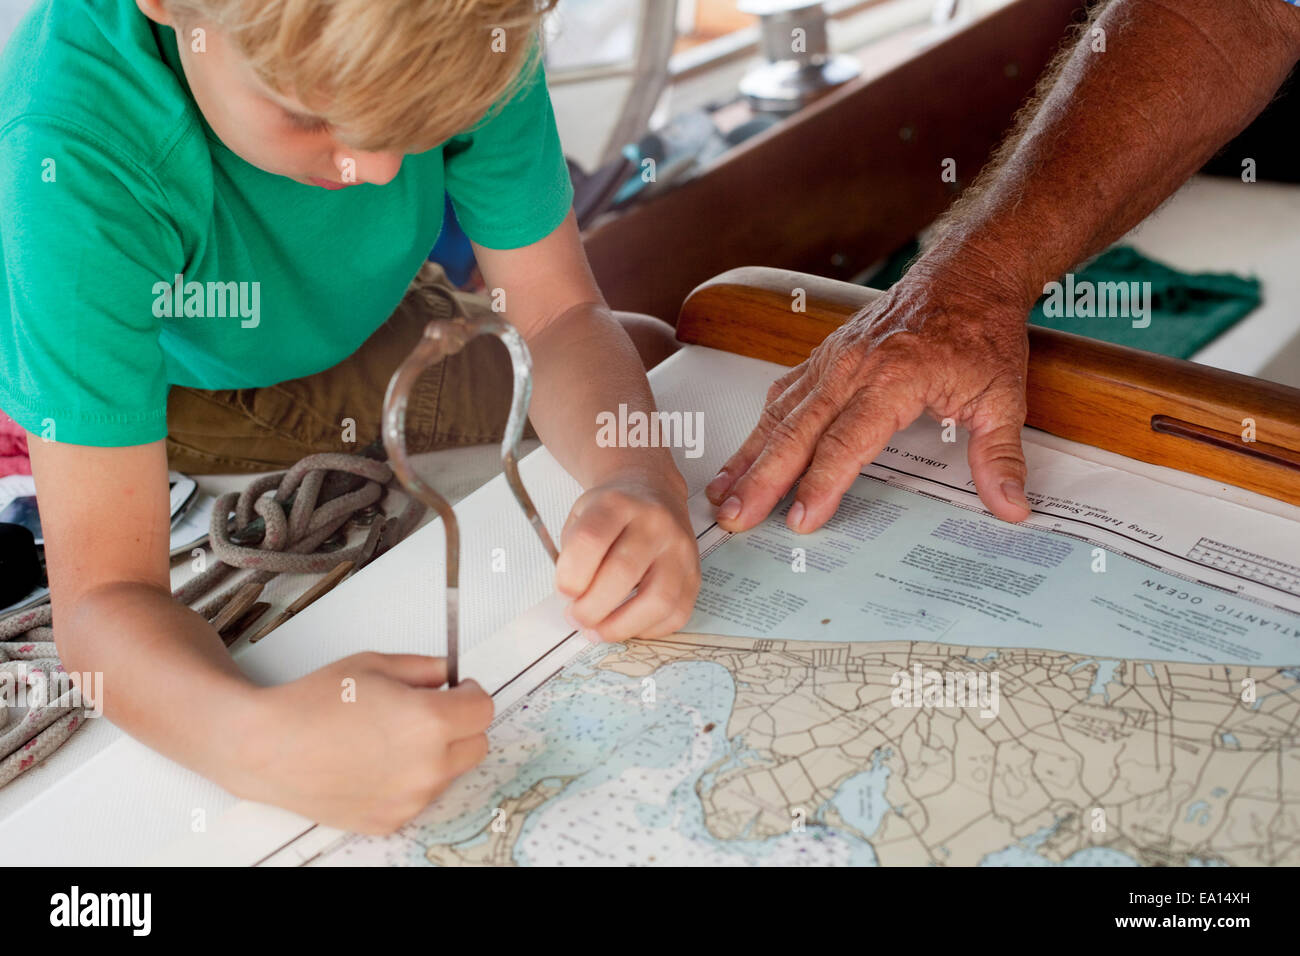 Boy and grandfather using dividers on navigation maps in sailboat cabin - Stock Image